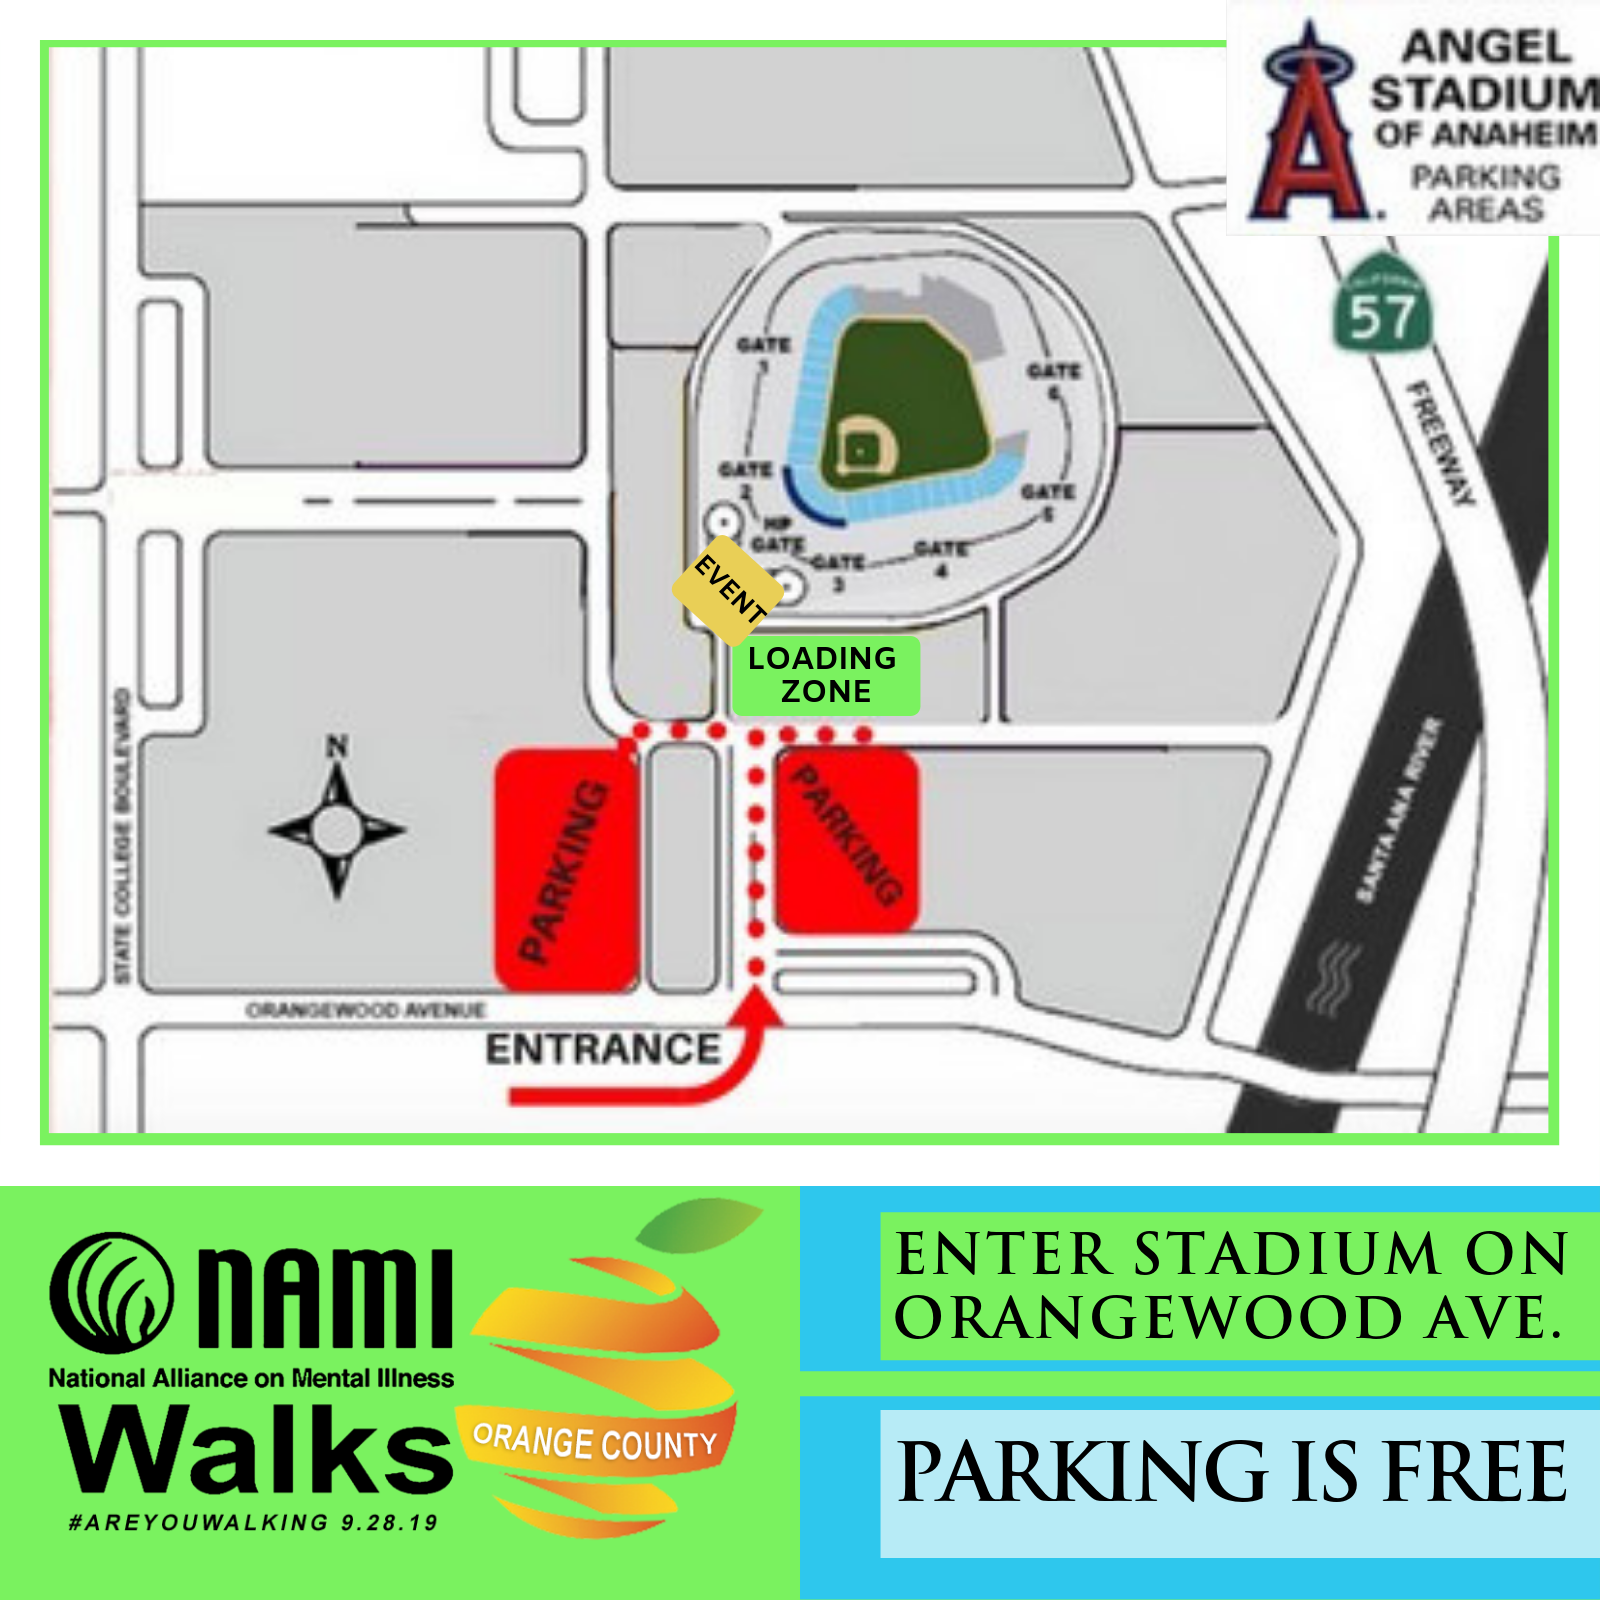 Walk Wednesday - Entrance-Loading Map.png